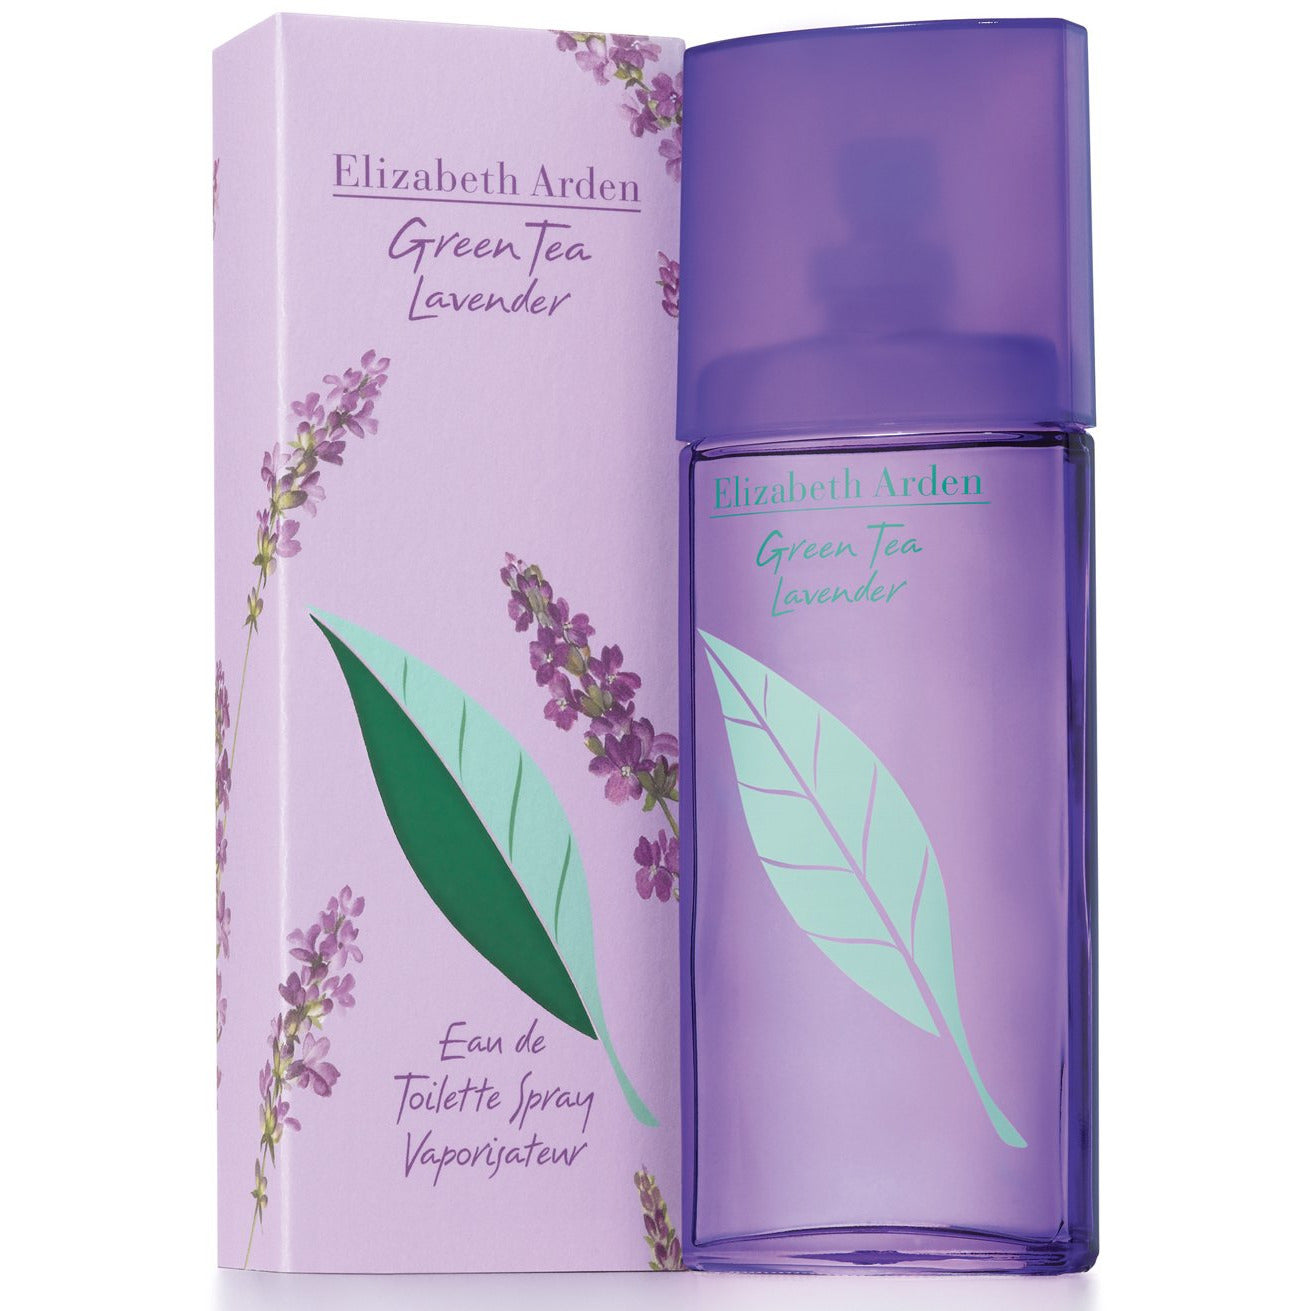 GREEN TEA LAVENDER Elizabeth Arden 3.3 oz 3.4 edt NEW IN BOX - 3.4 oz / 100 ml